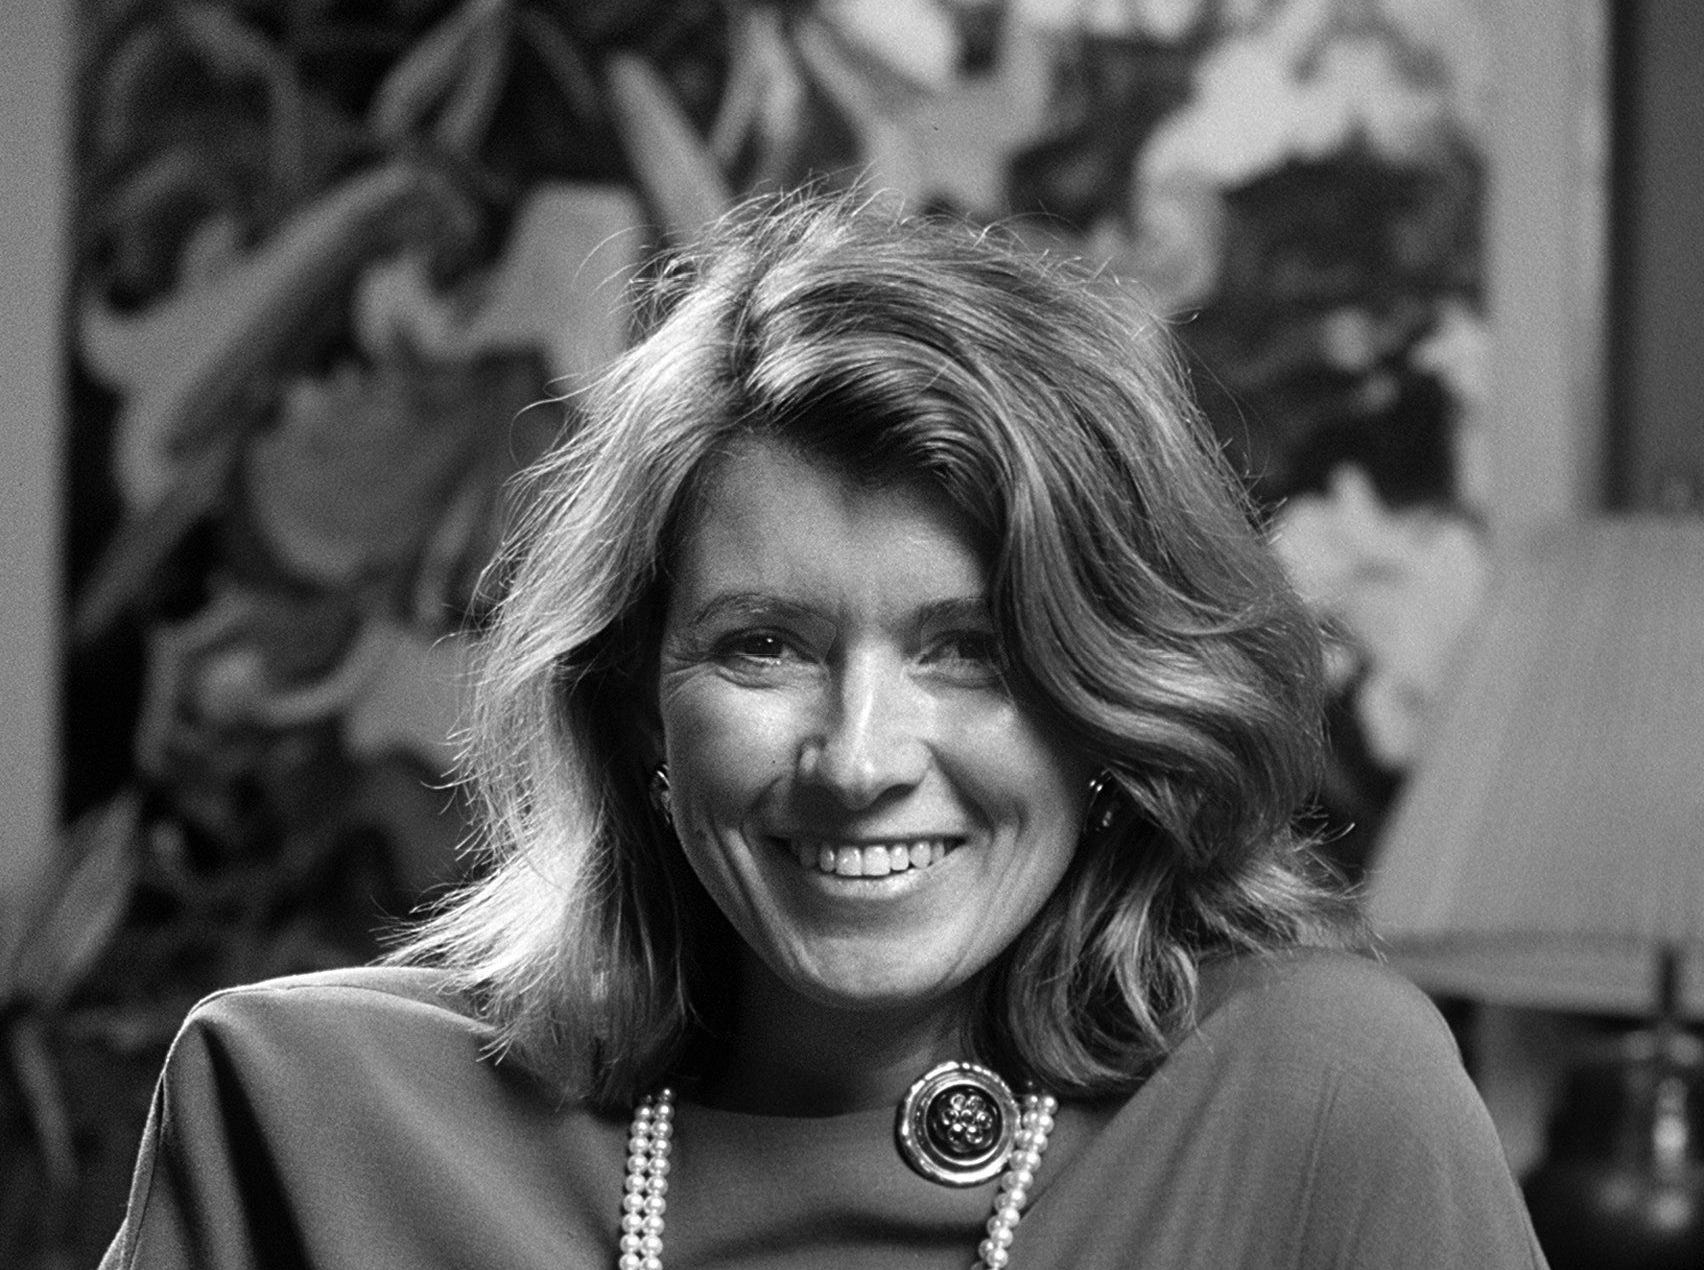 Martha Stewart, author of the popular books ?Entertaining? and ?Quick Cook? brought her expertise to Memphis on 16 Feb 1984. She was here to address members of the Memphis Garden Club and The Little Garden Club, affiliates of the Garden Club of America.